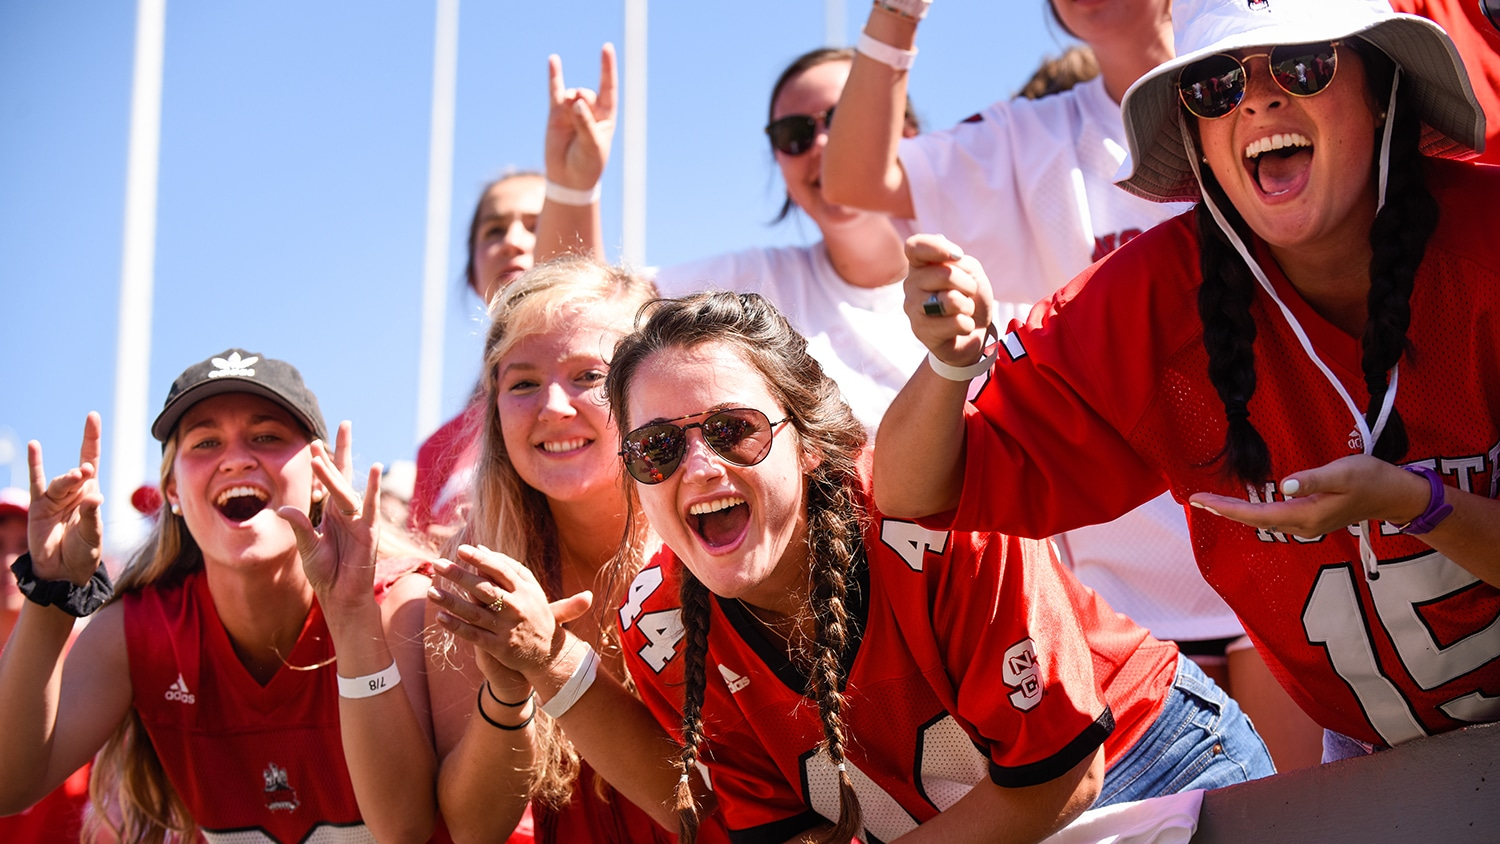 Students donning red jerseys cheer at an NCState football game.